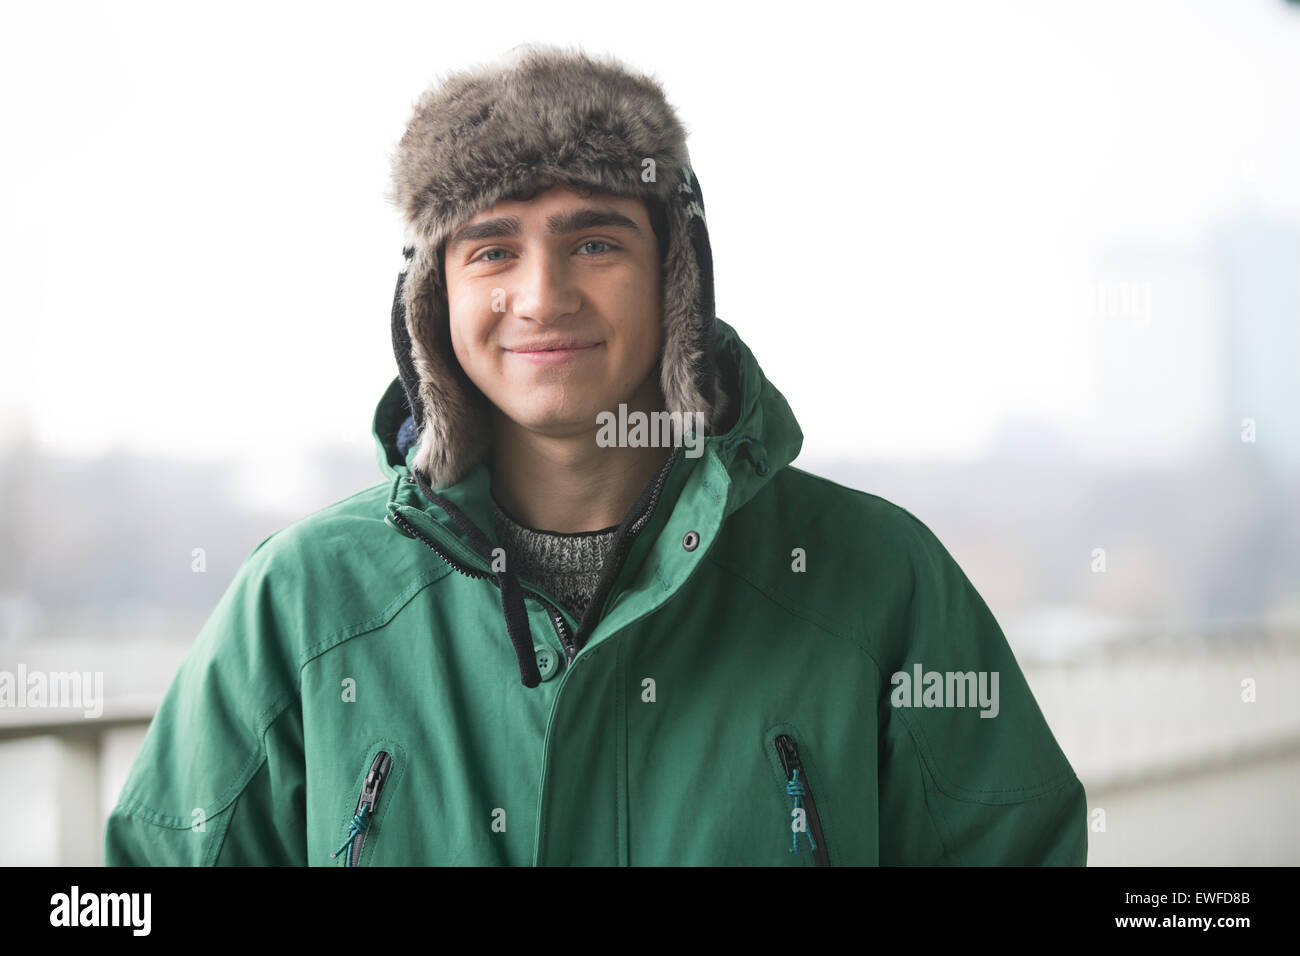 Portrait of man in winter wear smiling outdoors - Stock Image